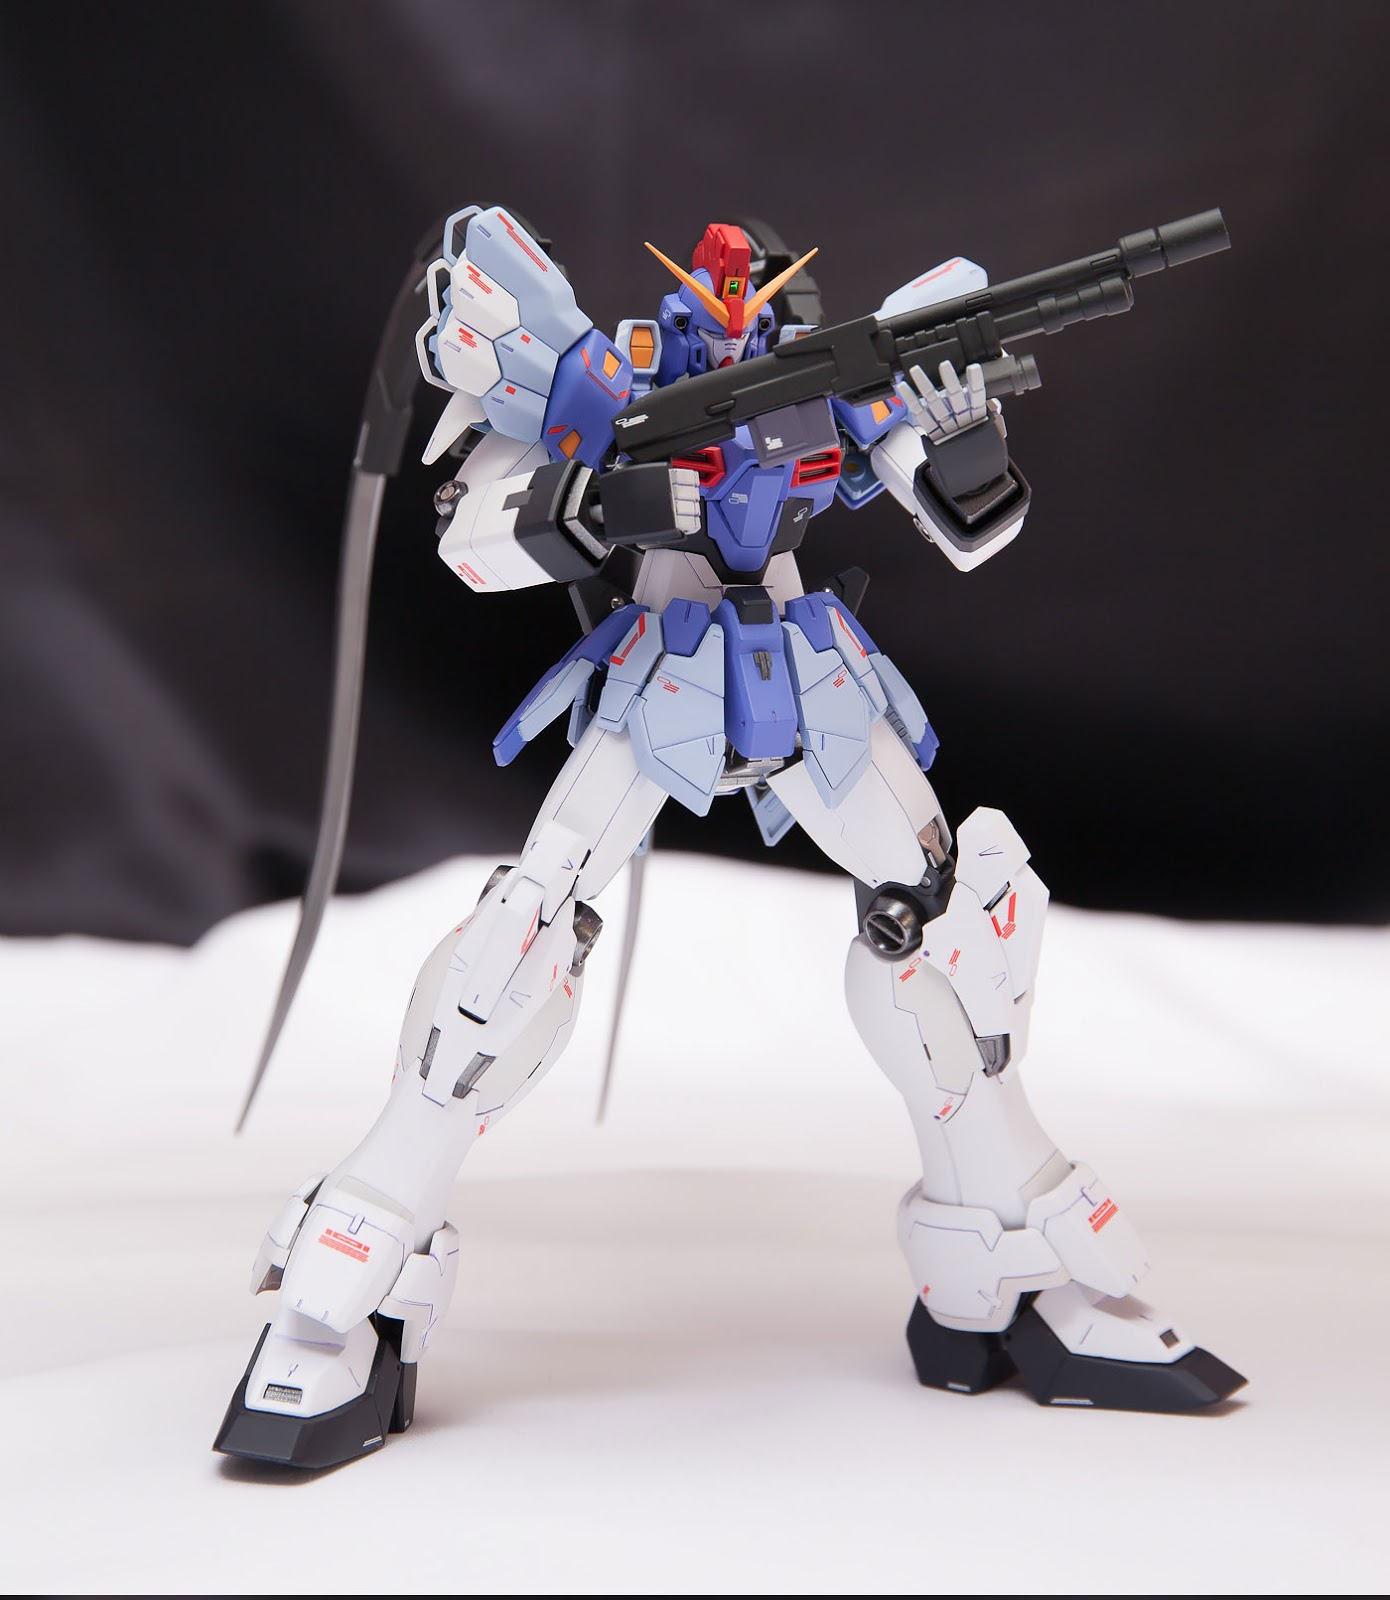 Custom Build: MG 1/100 Gundam Sandrock Custom EW ver. + Anti-Beam Cloak